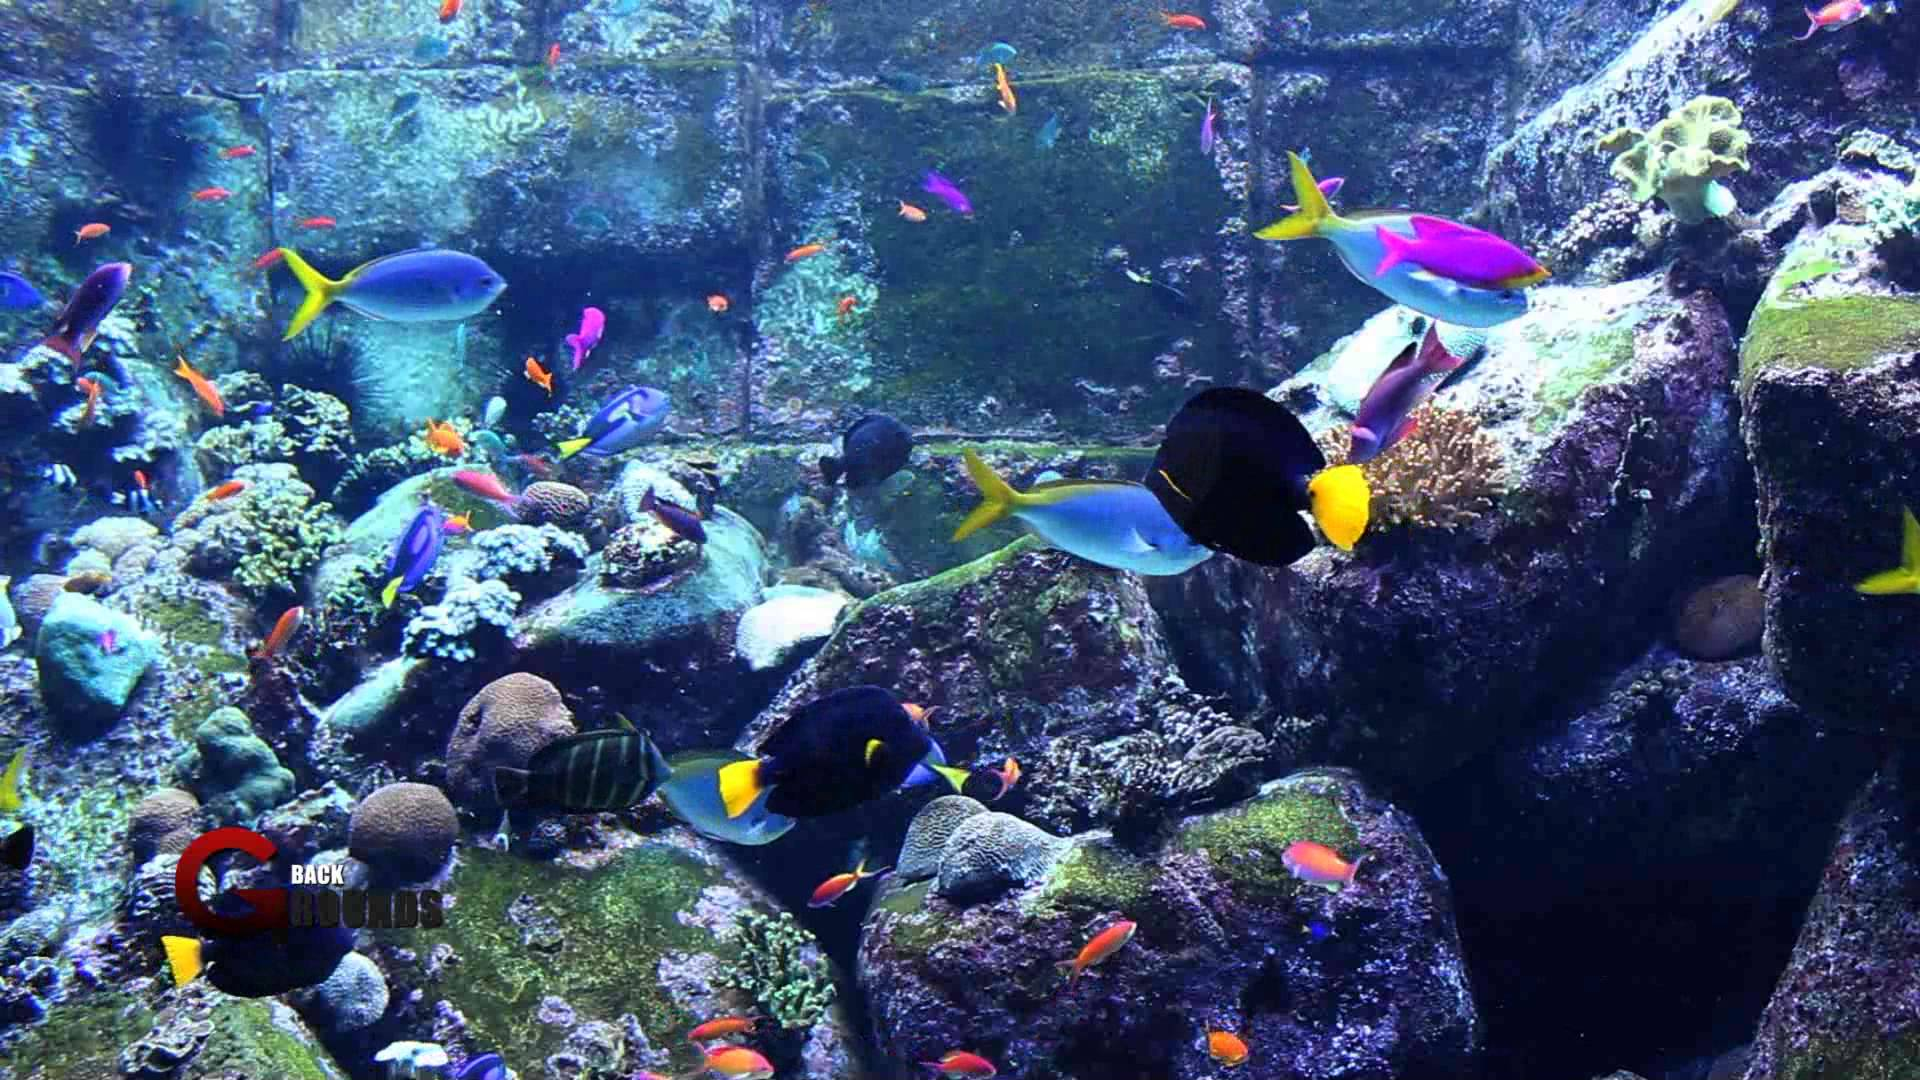 aquarium wallpaper hd - photo #13